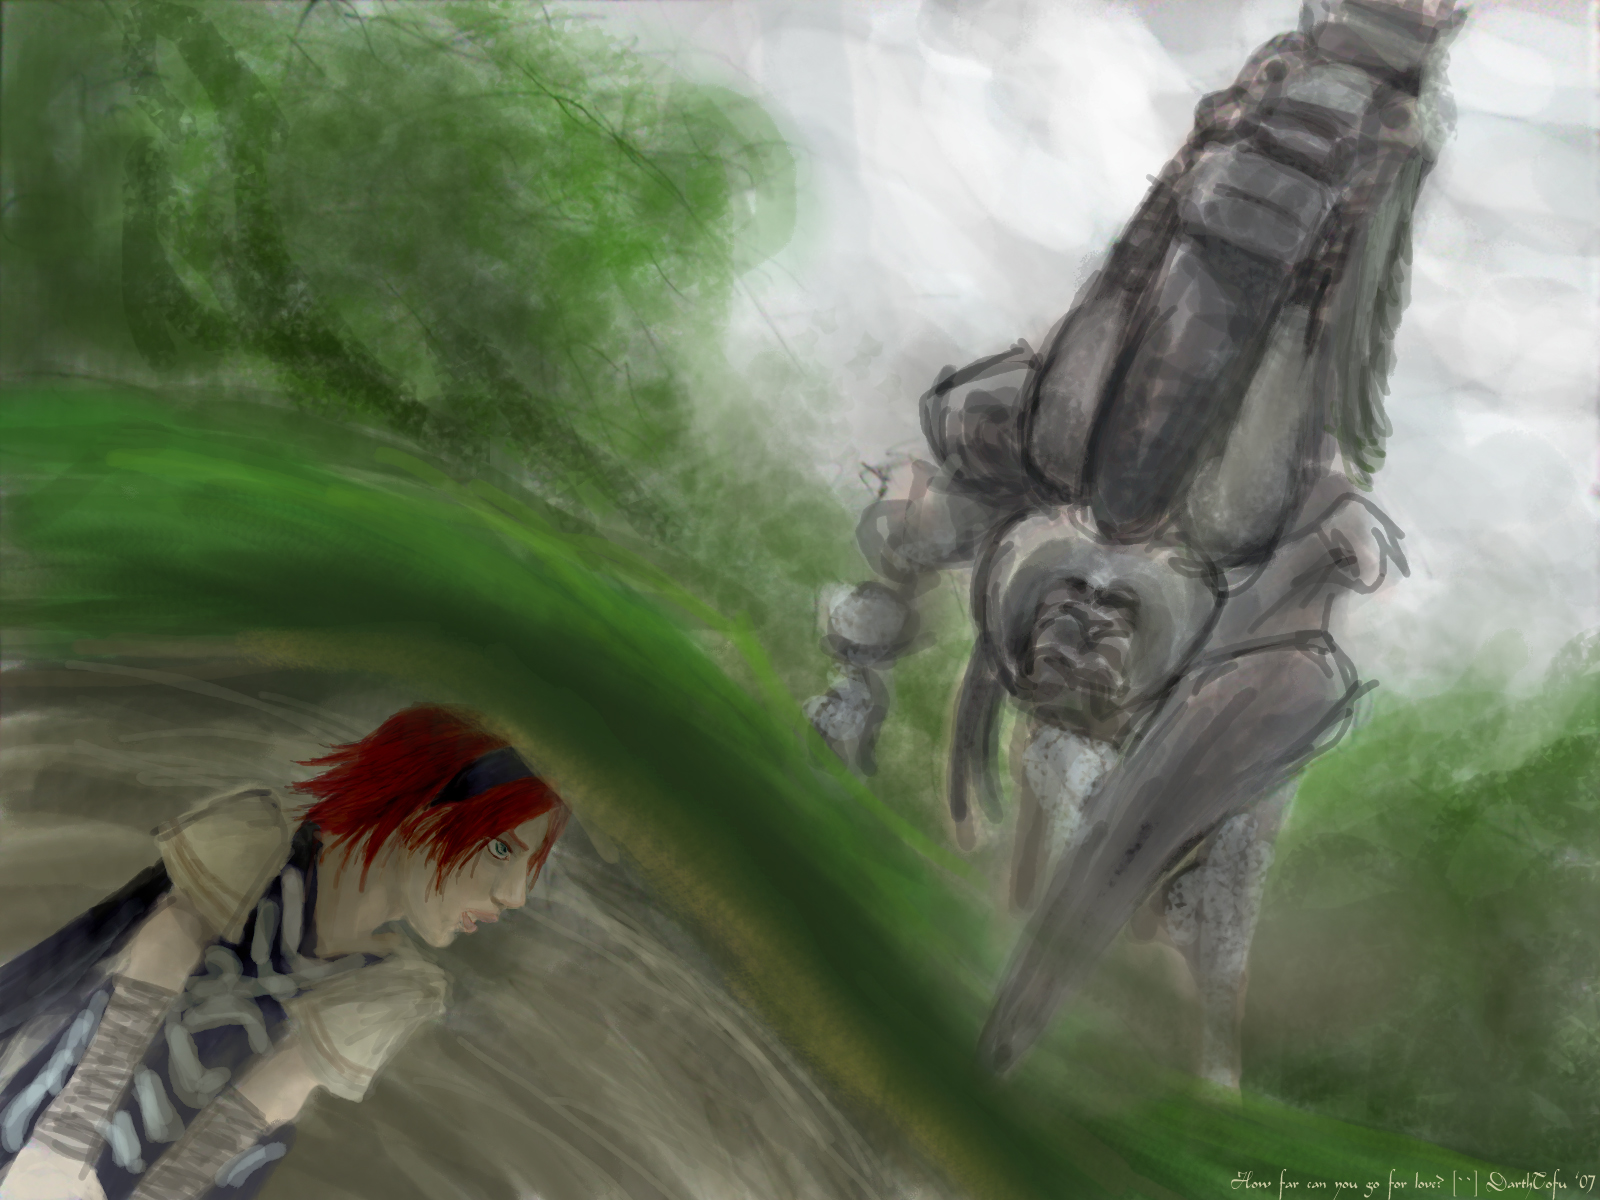 Shadow of the Colossus Wallpaper: How far will you go for ...